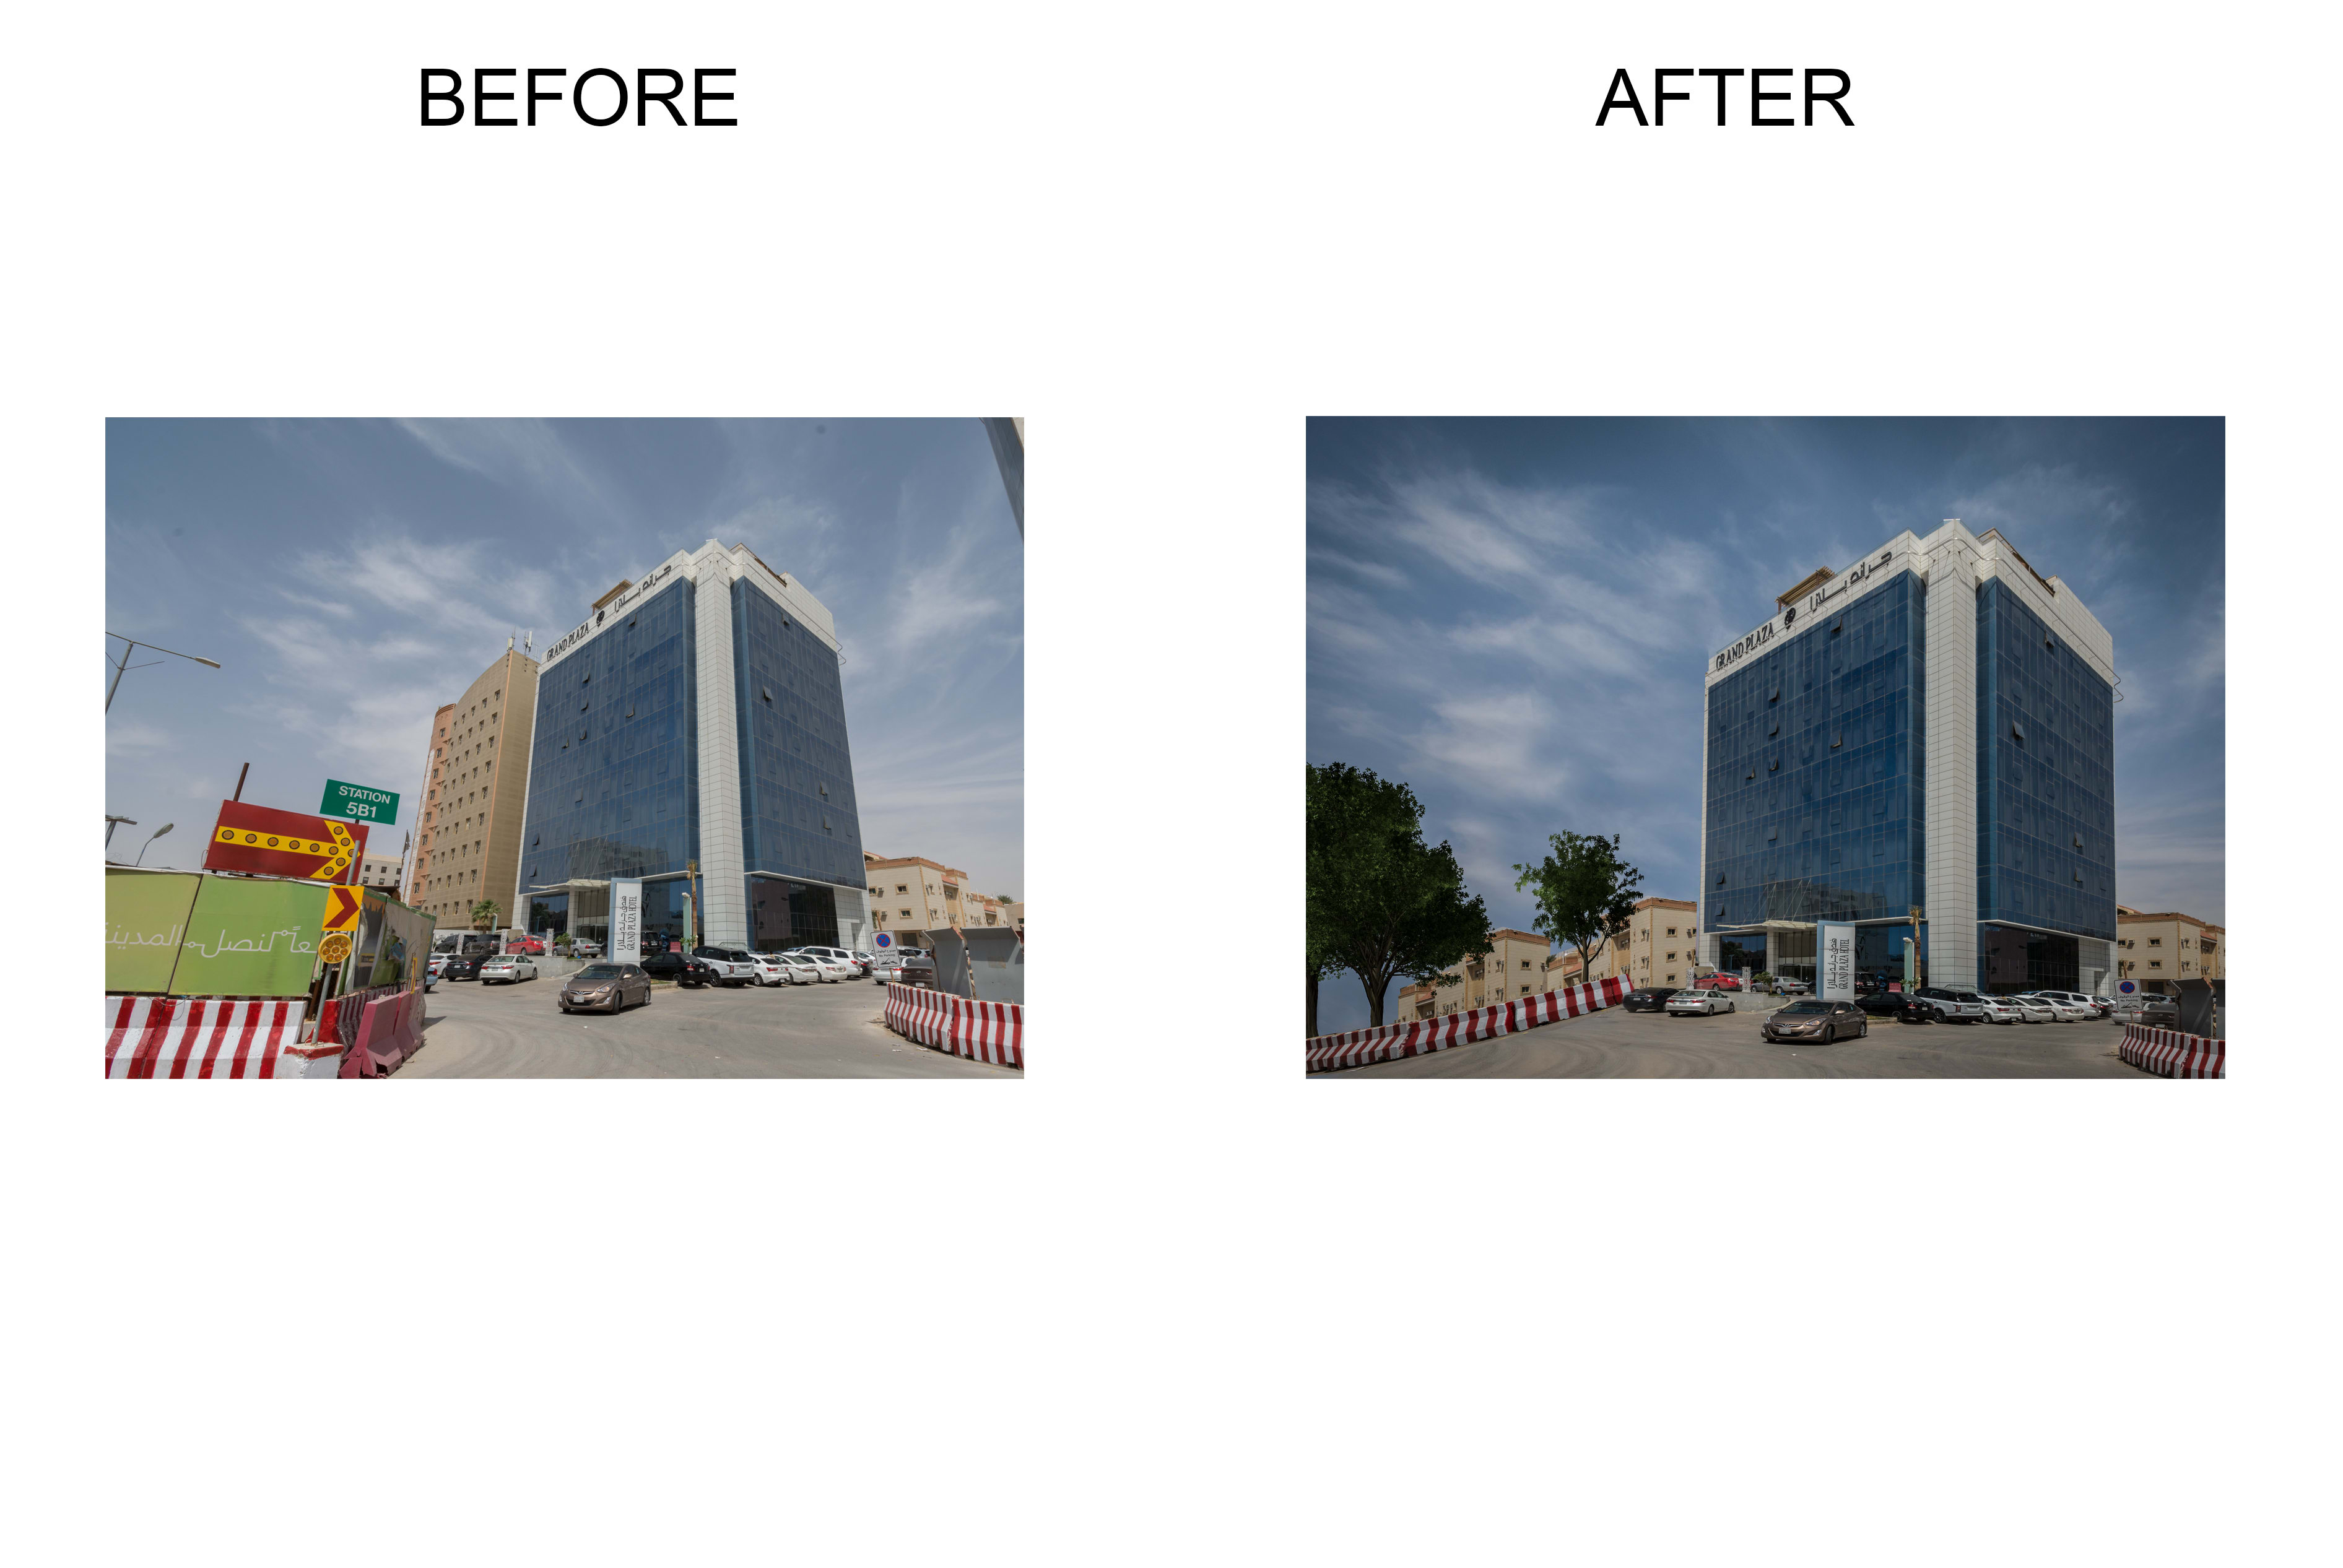 Architecture Photo Retouching By Azzydoon